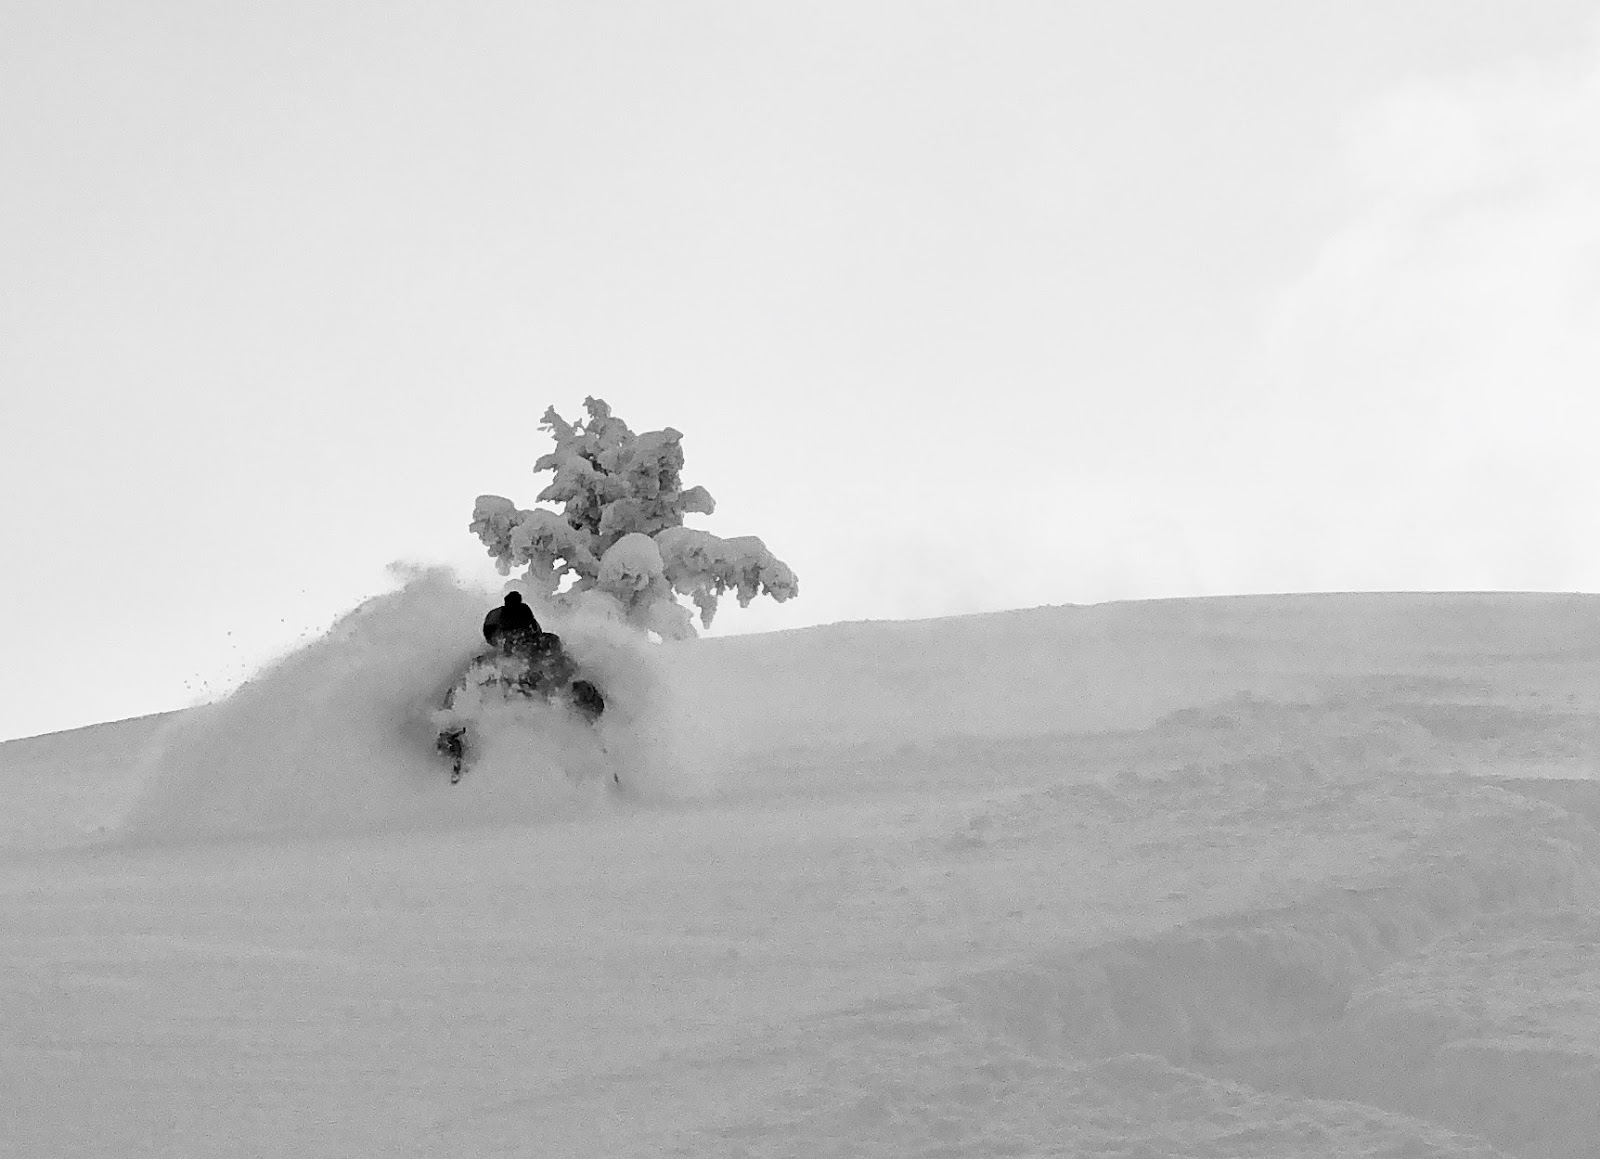 Ogden Avalanche Information: 2/17-2/24 Review, Powder Skiing